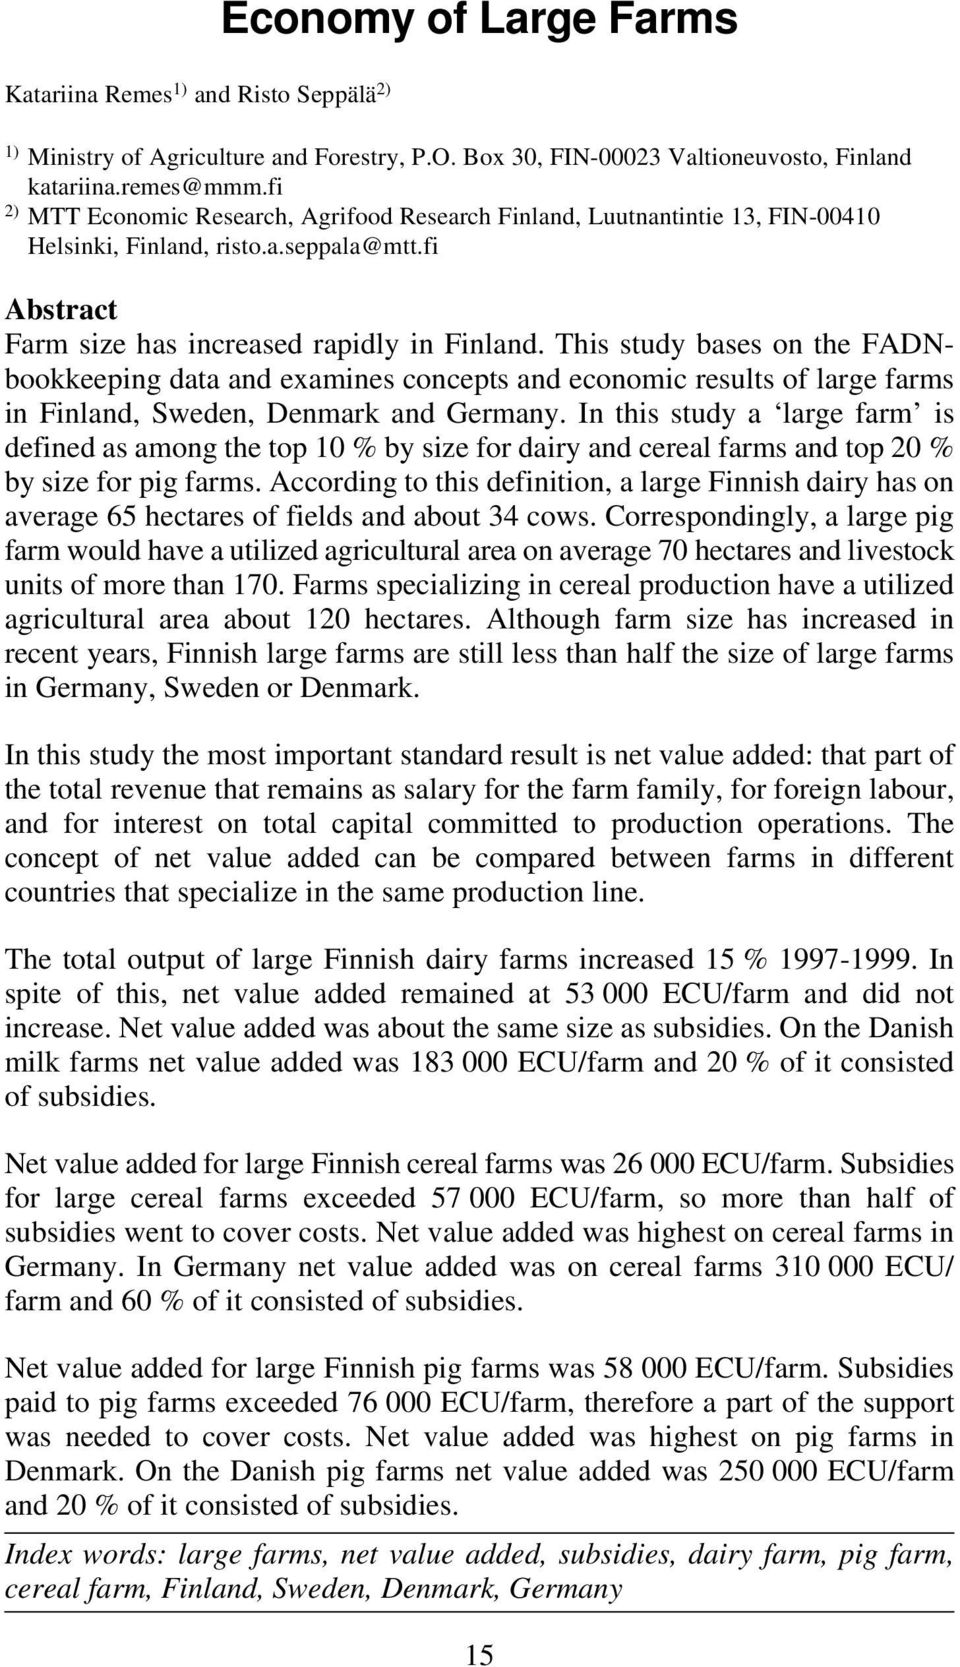 This study bases on the FADNbookkeeping data and examines concepts and economic results of large farms in Finland, Sweden, Denmark and Germany.